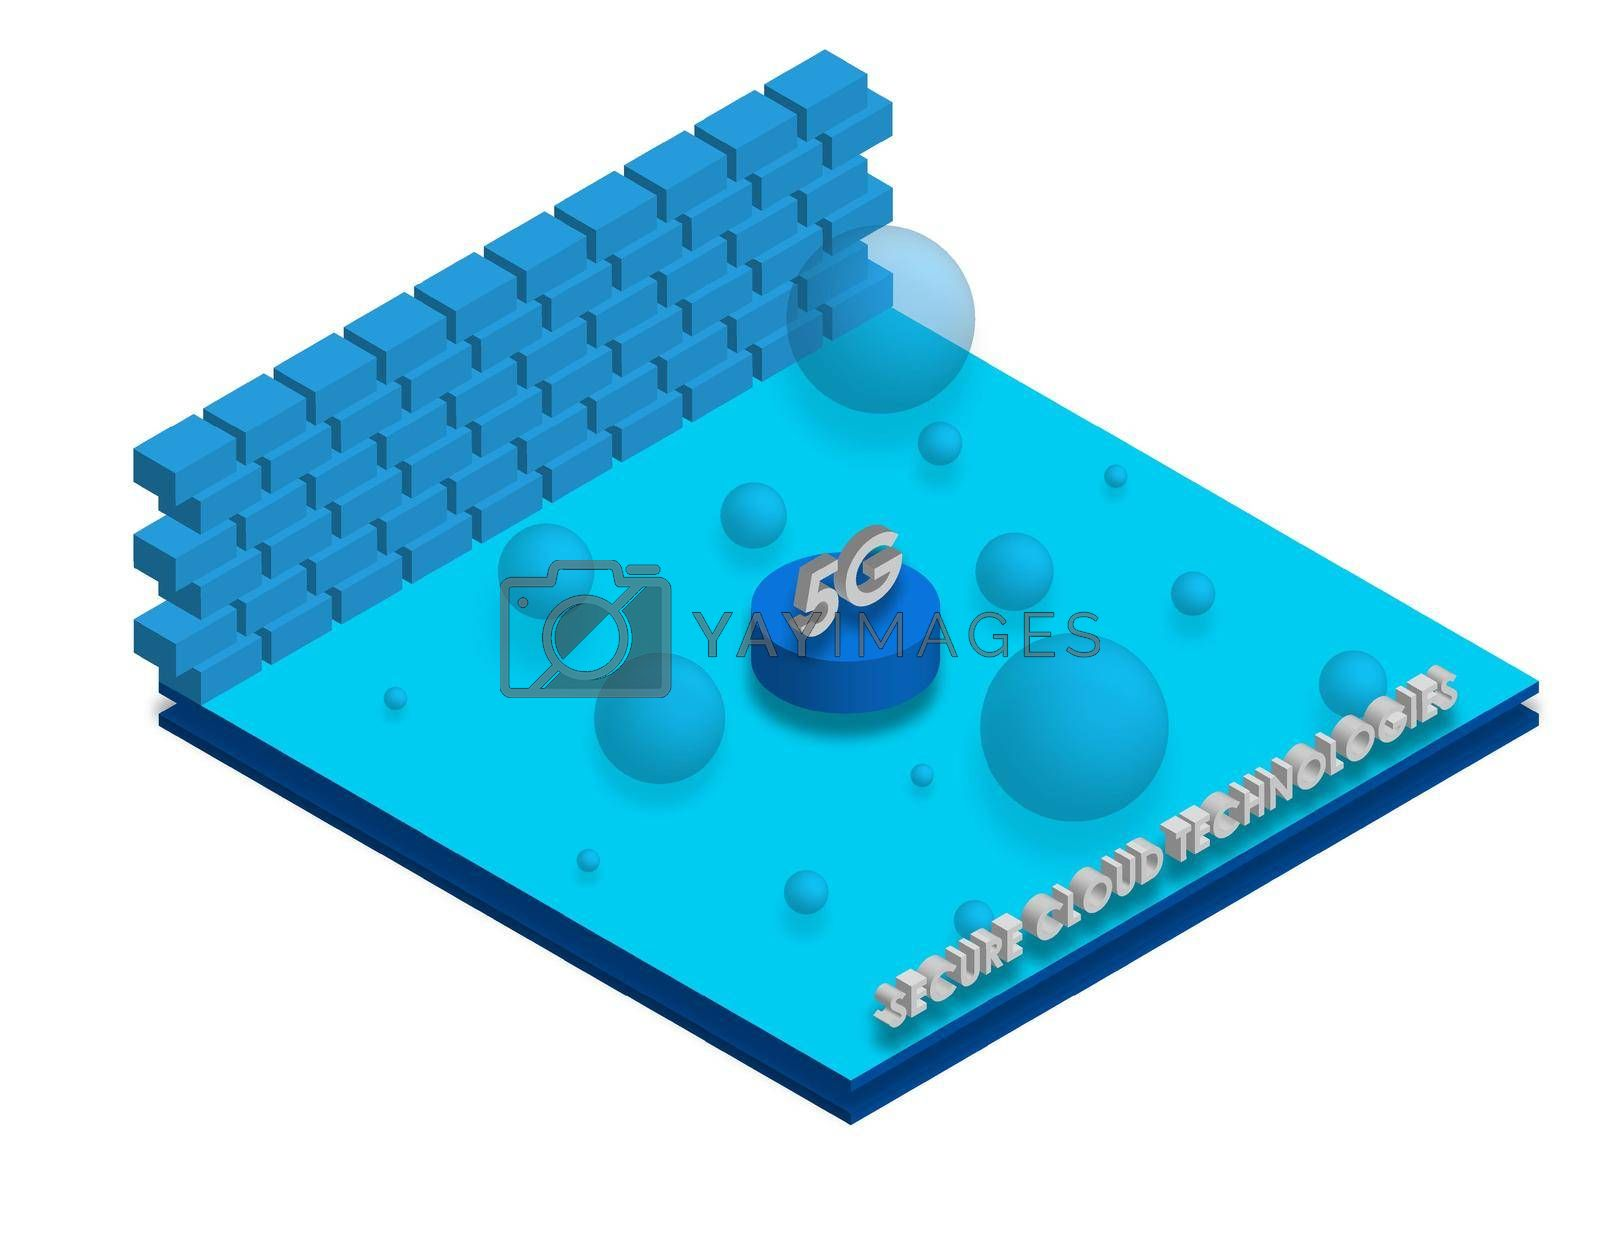 5G isometry. Advantages of new technologies, secure cloud technology. Strong network signal. Vector on a white background by RNko